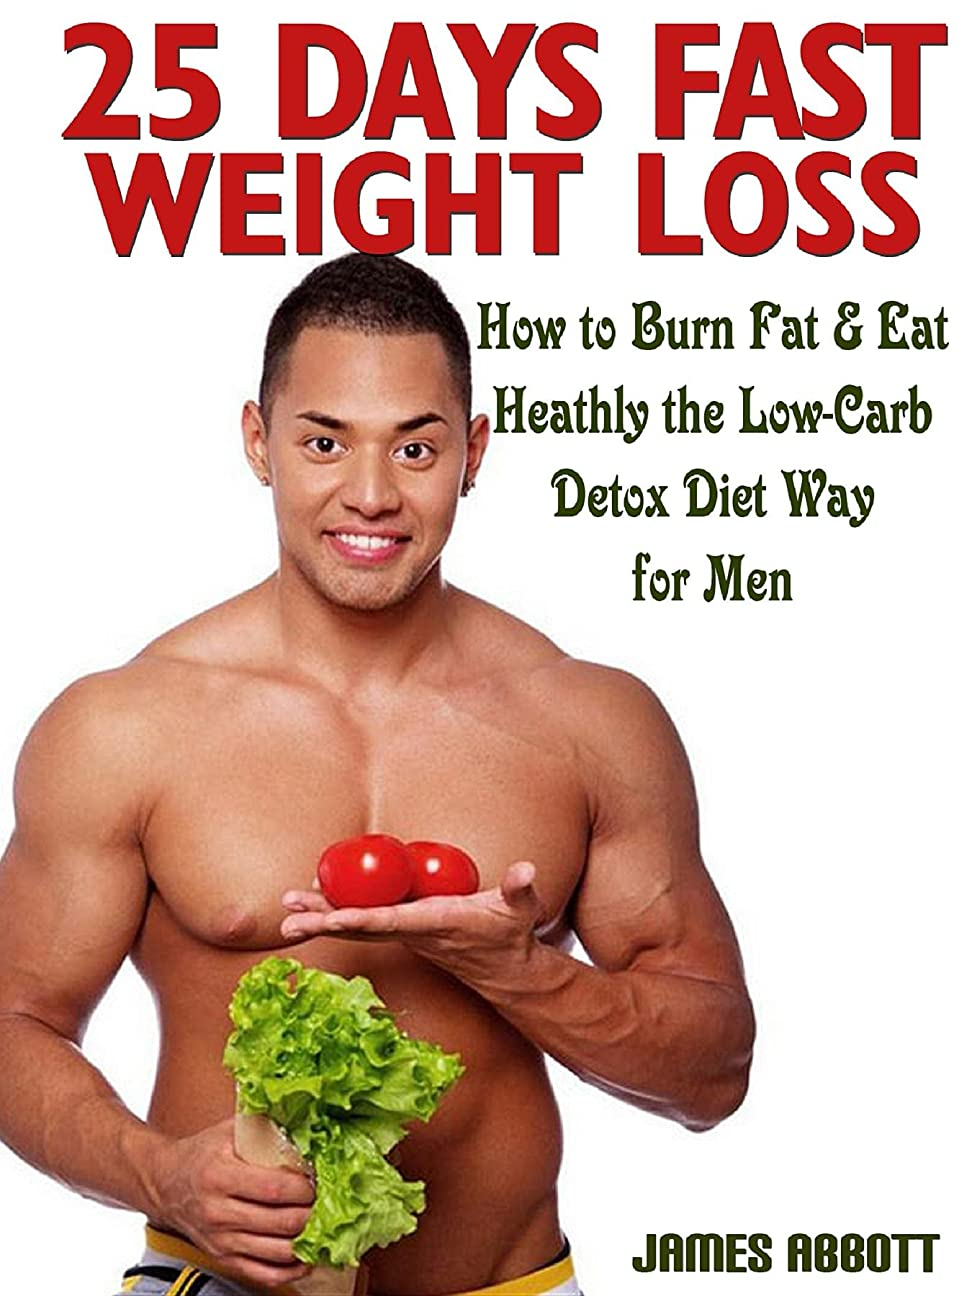 25 Days Fast Weight Loss How to Burn Fat & Eat Healthy the Low-Carb Detox Diet Way for Men (English Edition)